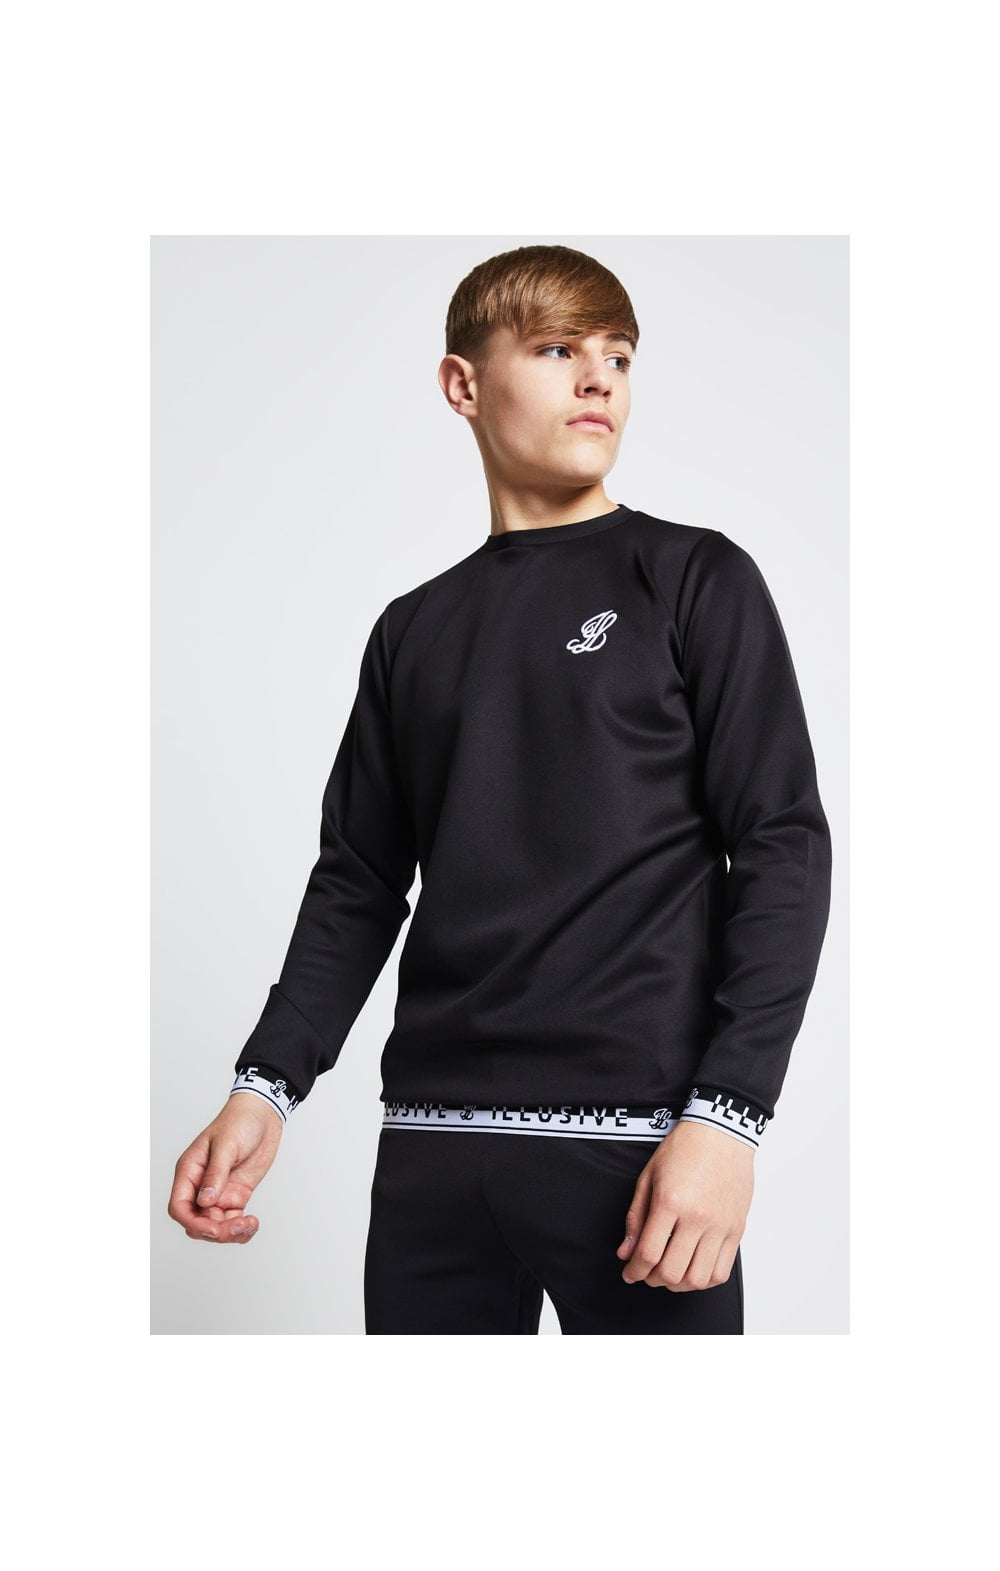 Load image into Gallery viewer, Illusive London Taped Crew Sweater - Black (1)